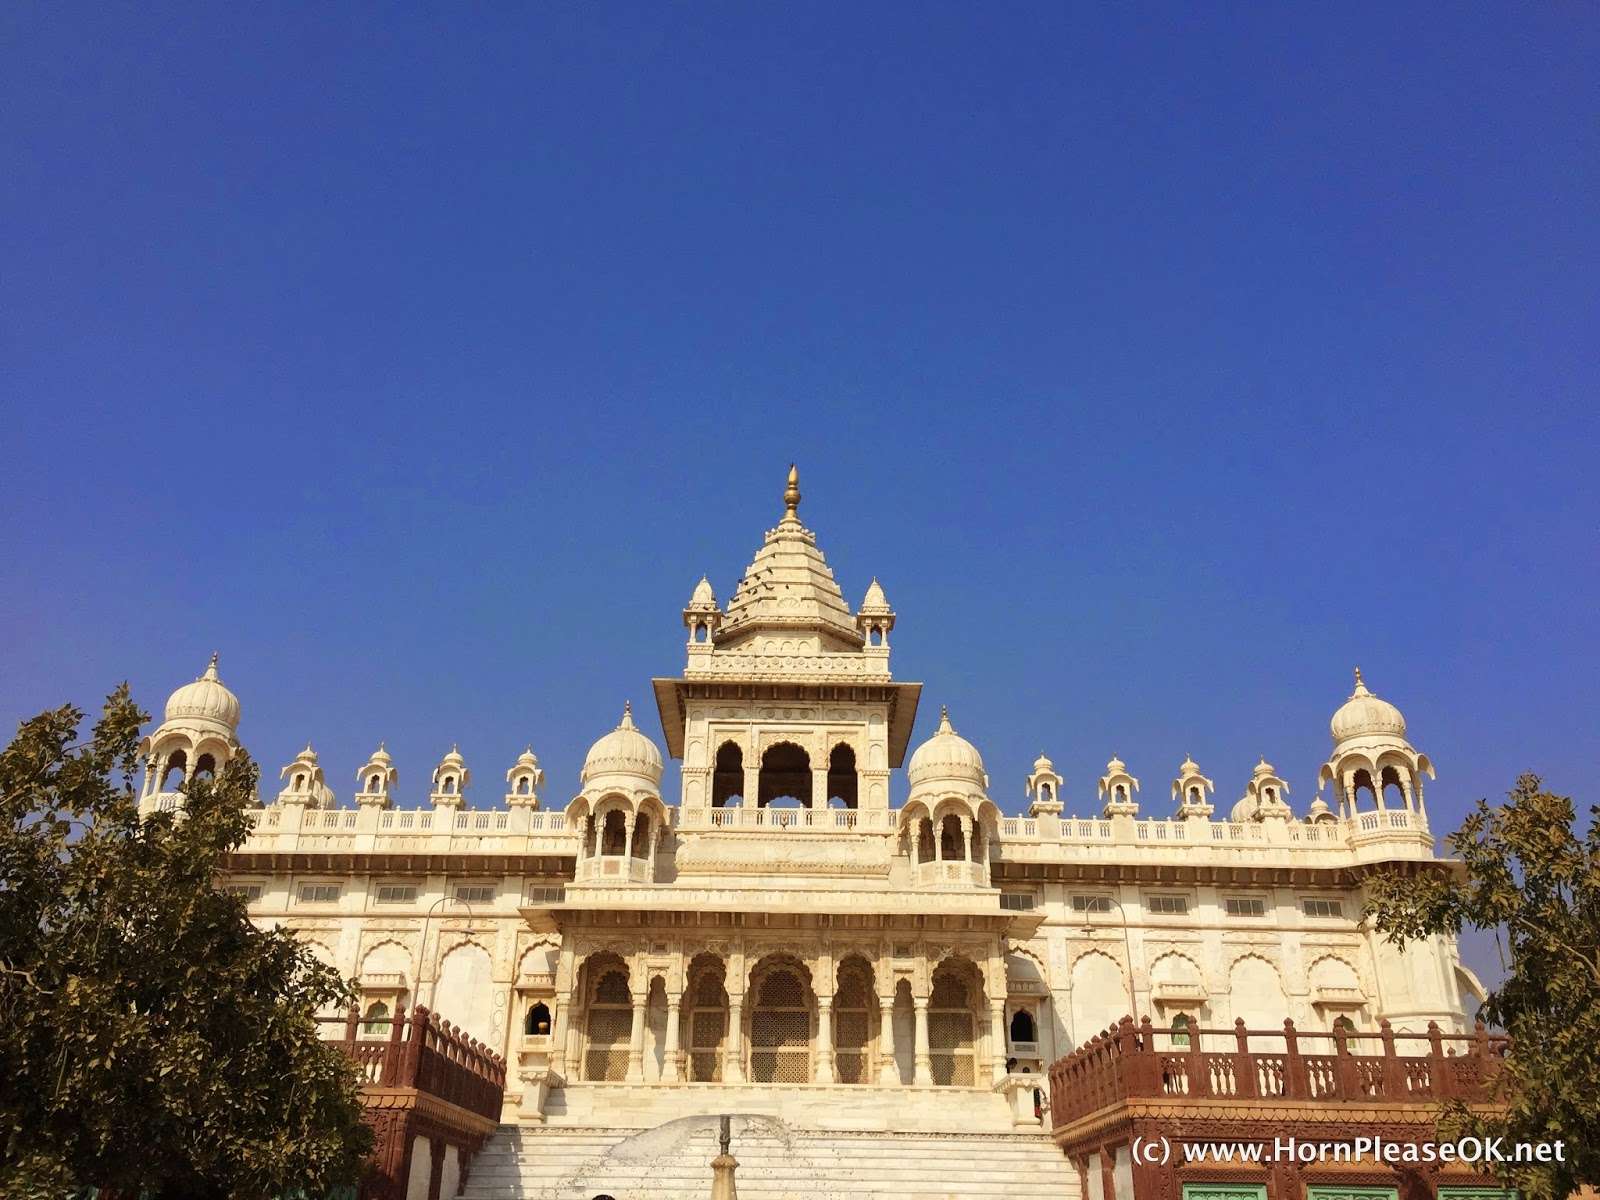 Jaswant Thada, a memorial to King Jaswant Singh II